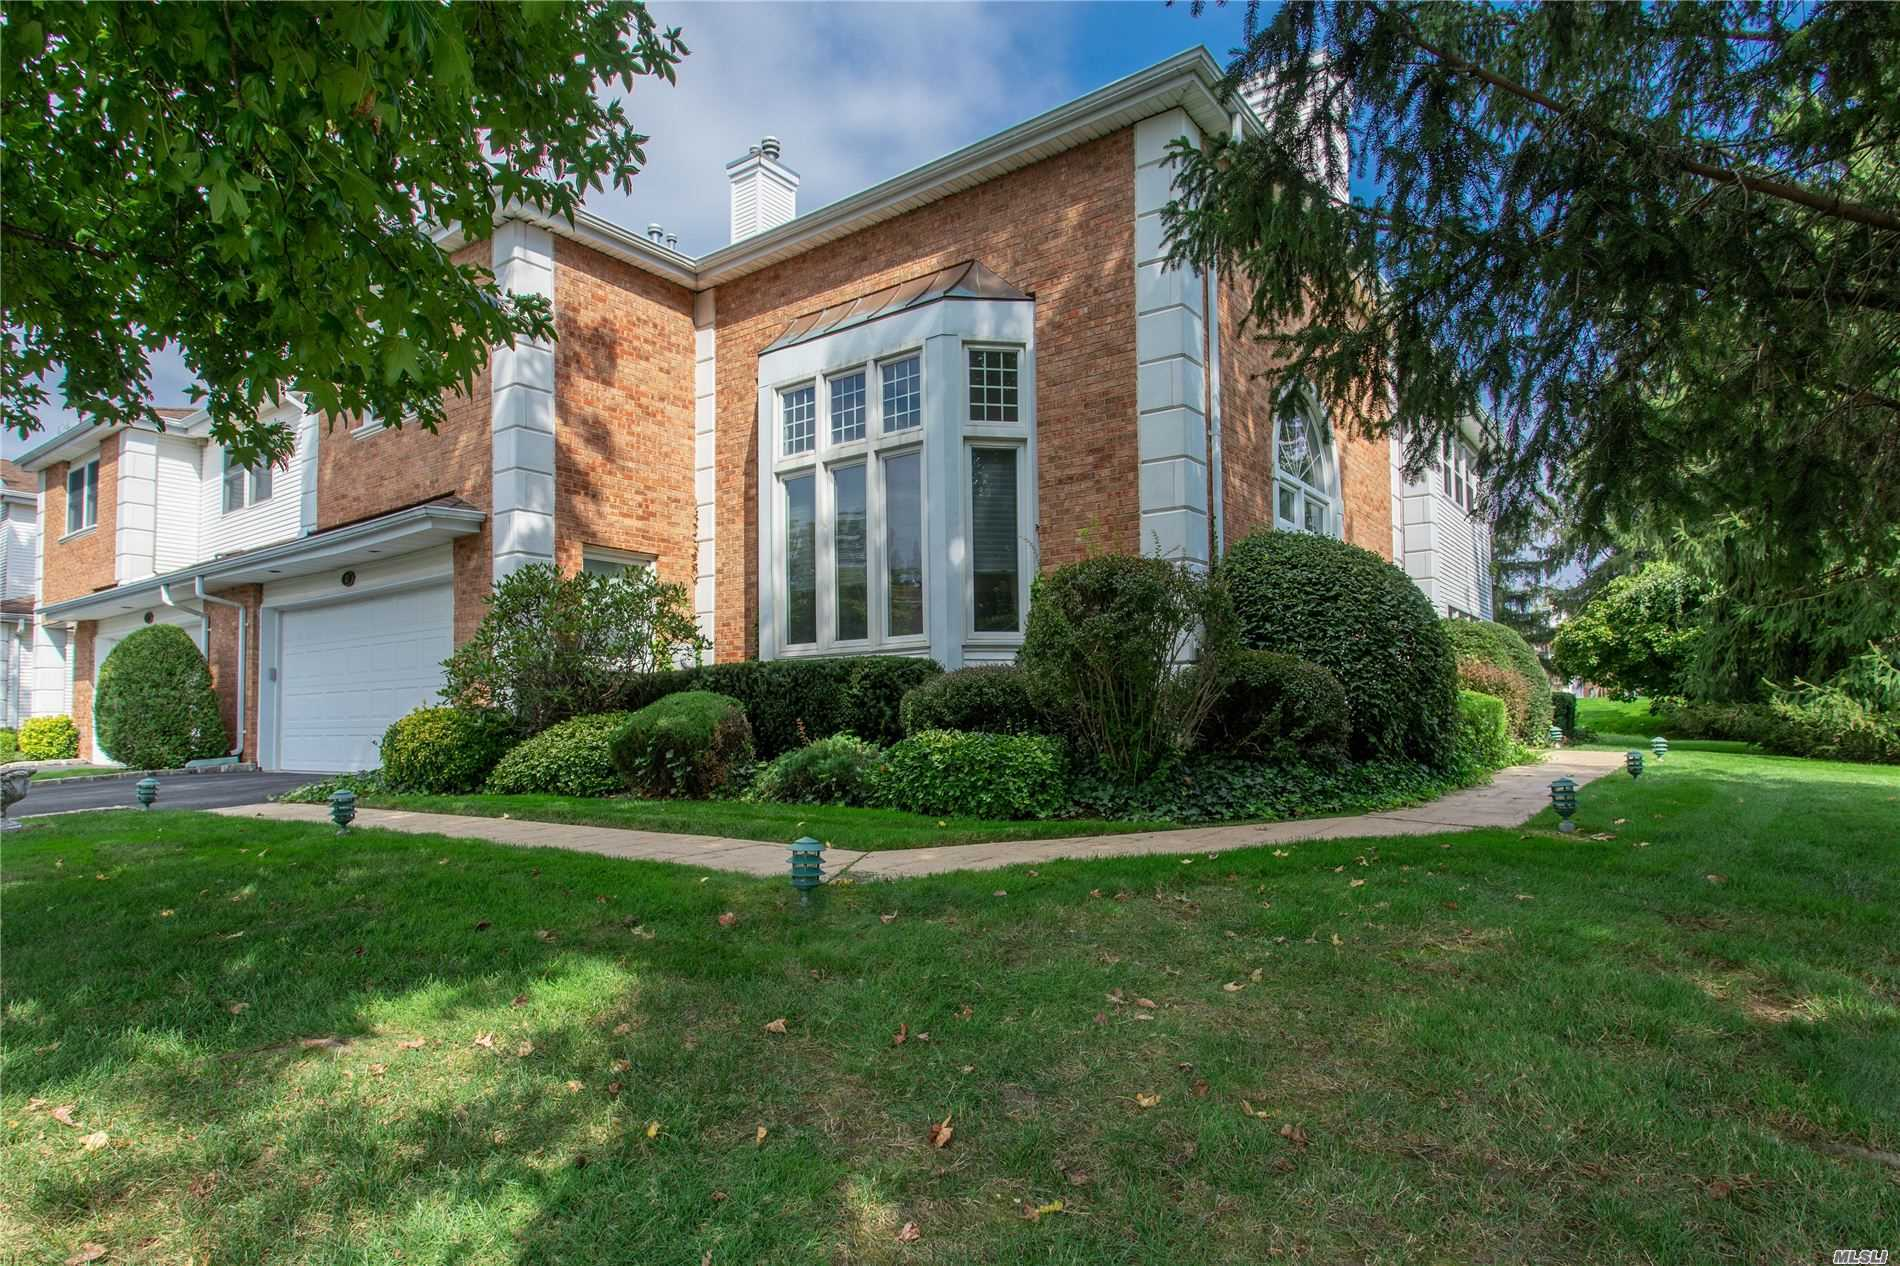 Property for sale at 38 Hamlet Drive, Commack NY 11725, Commack,  New York 11725